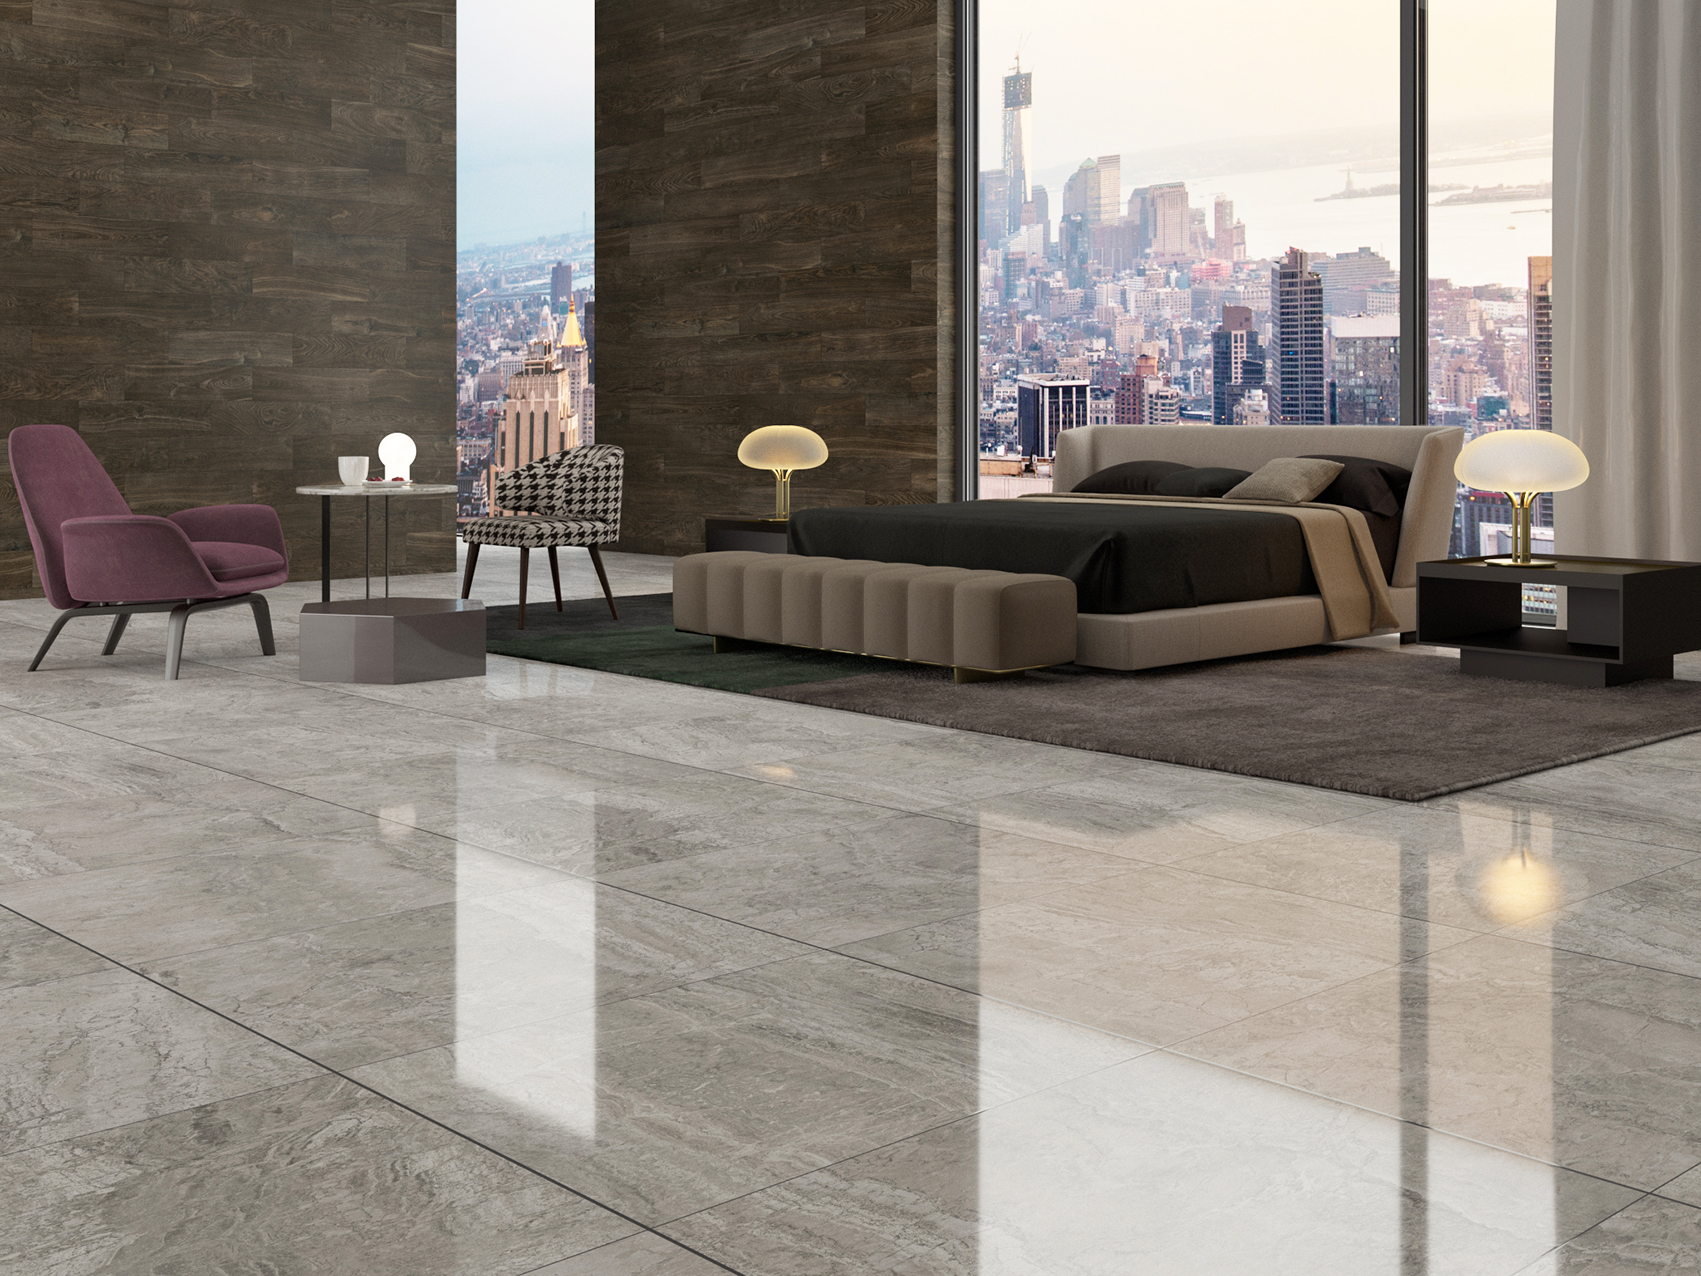 MURO TRILOGY COLLECTION Rovere Black PISO TRILOGY COLLECTION Apuano Gray.jpg